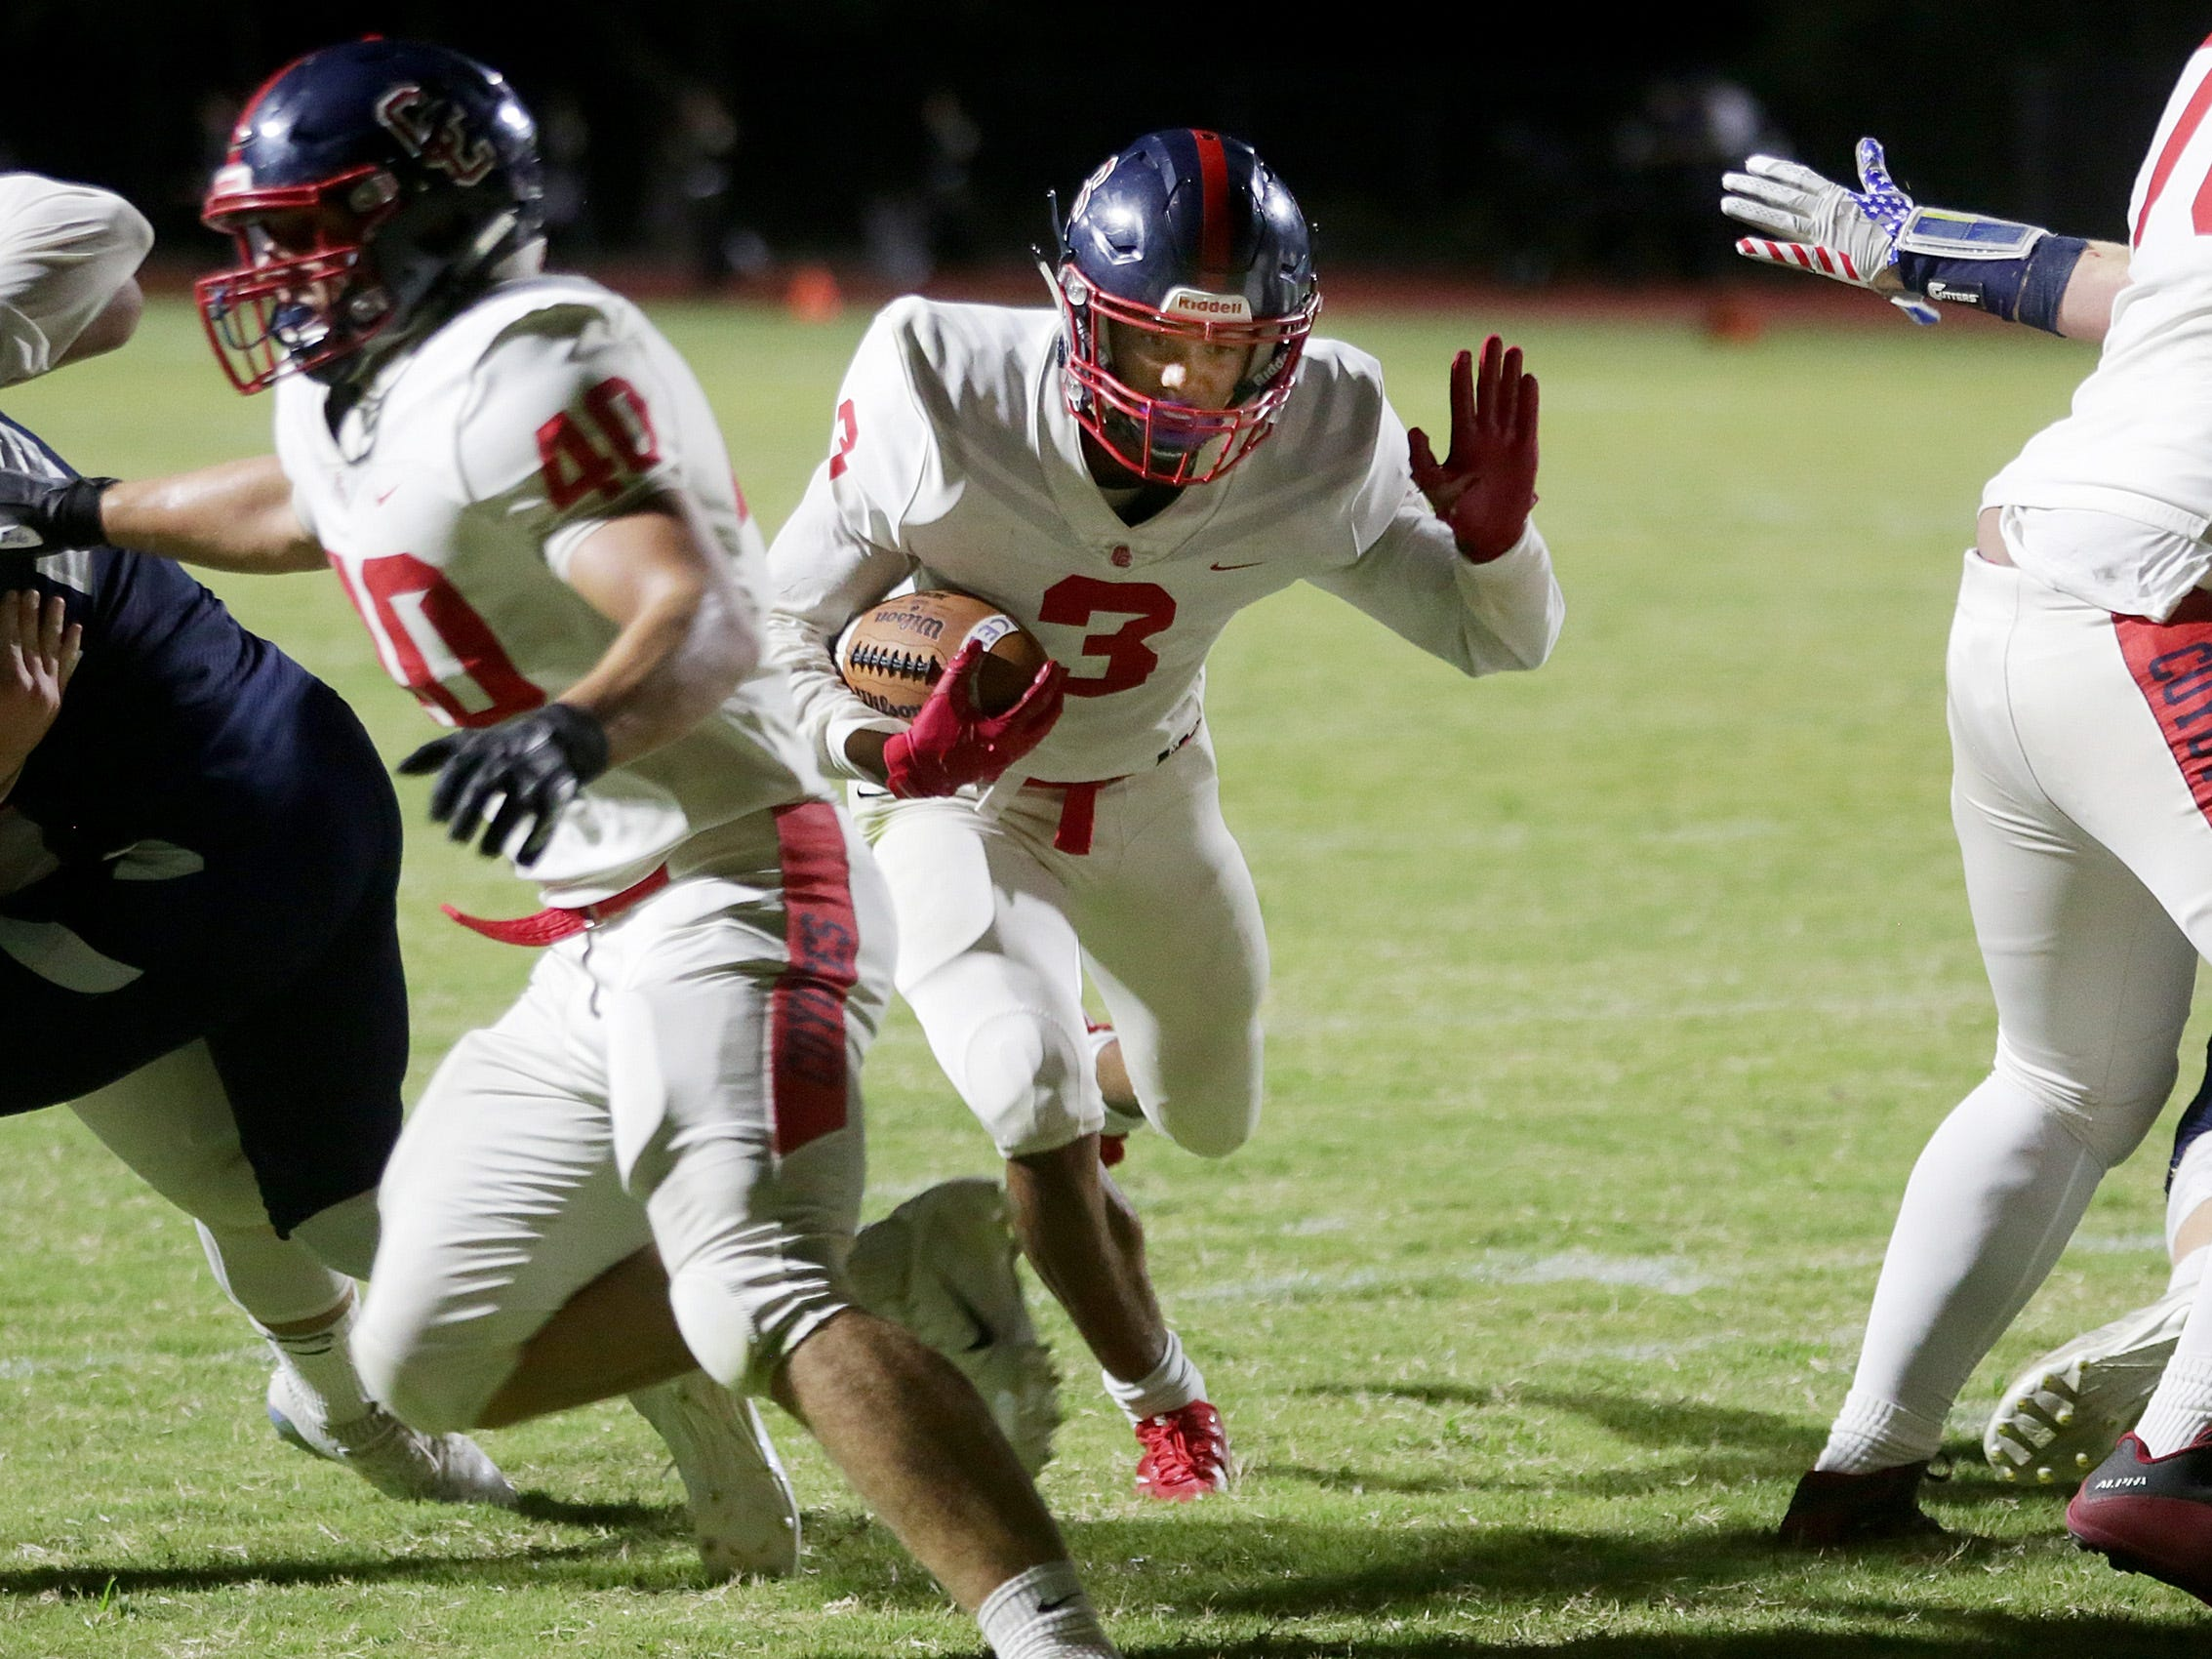 Peoria Centennial's Jaydin Young scores against Oro Valley Ironwood Ridge on Sept. 14, 2018, in Oro Valley, Ariz.